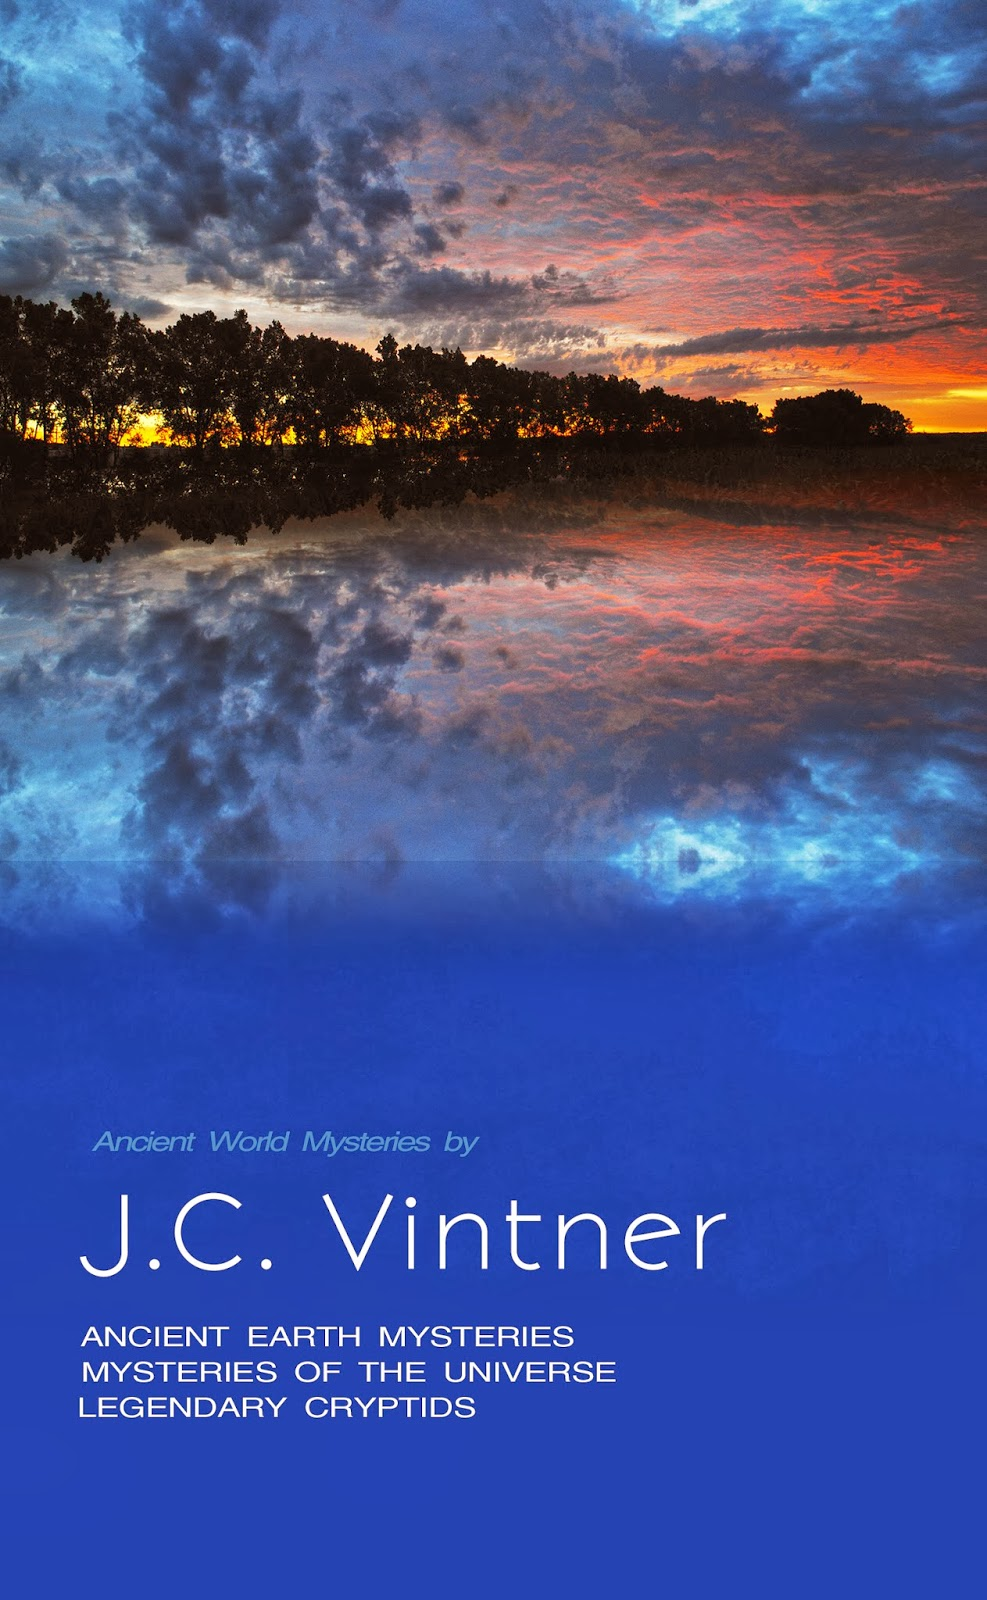 J.C. Vintner's Ancient World Mysteries Book Cover